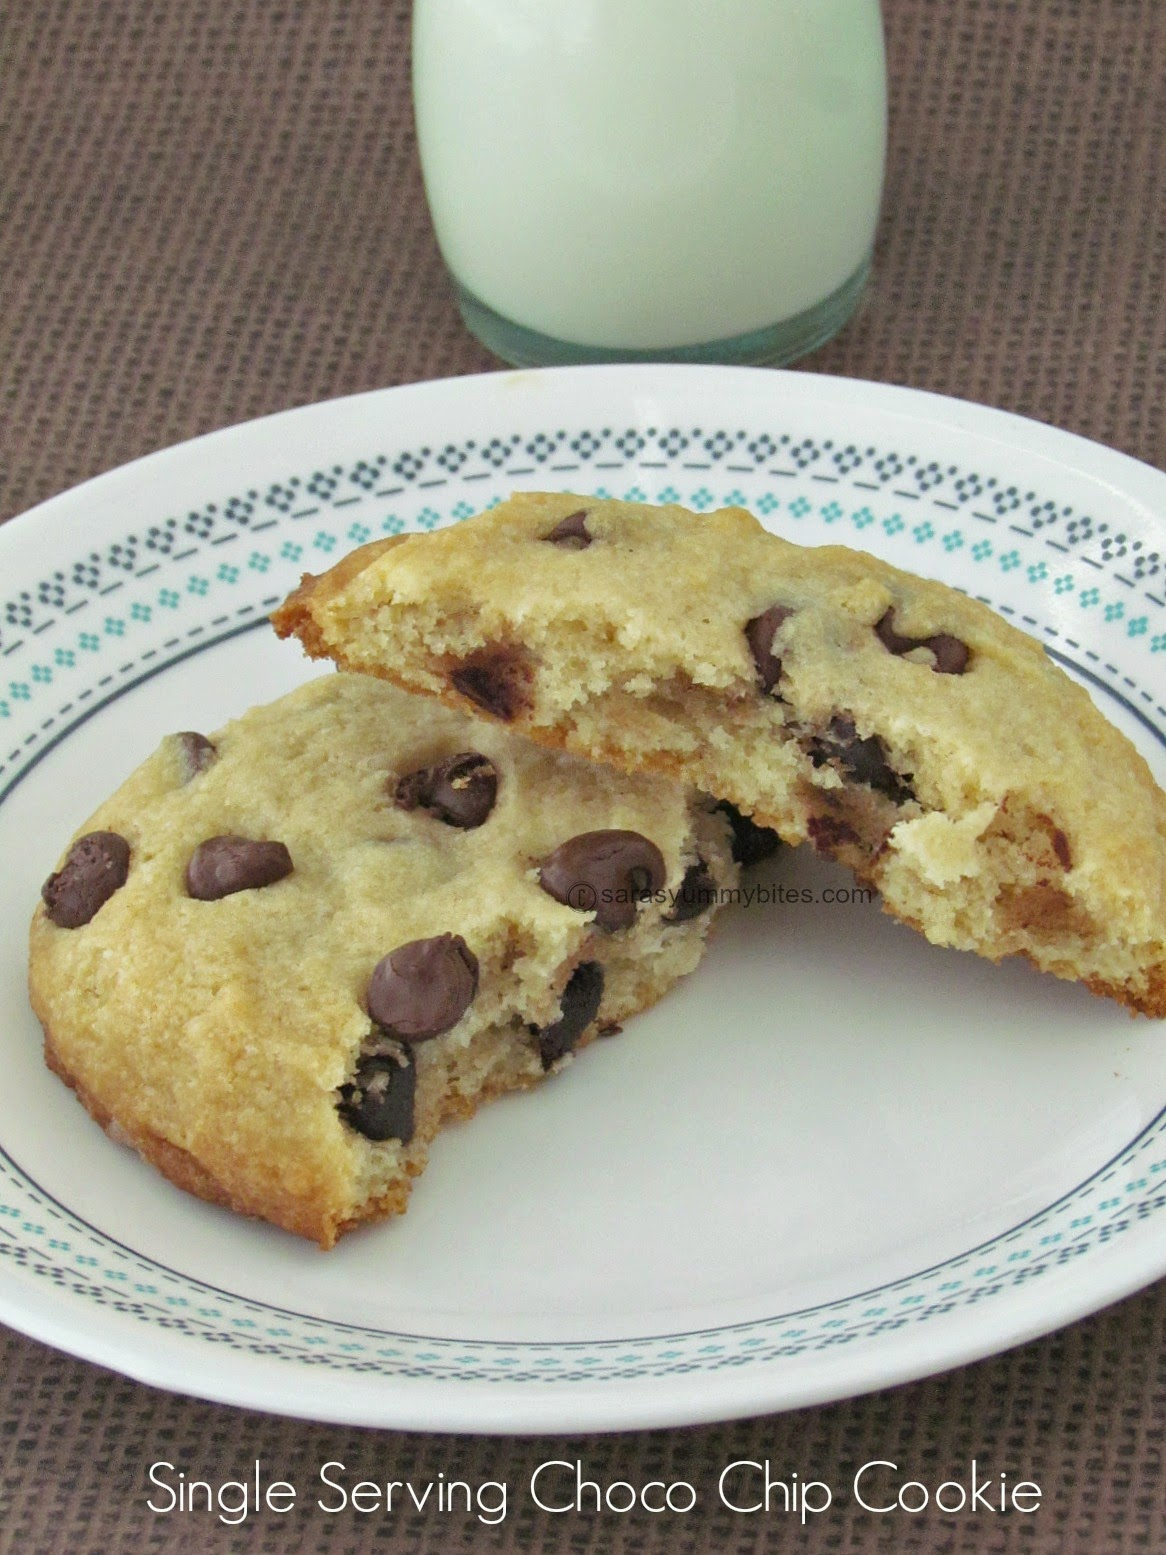 Single Serving Choco Chip Cookie